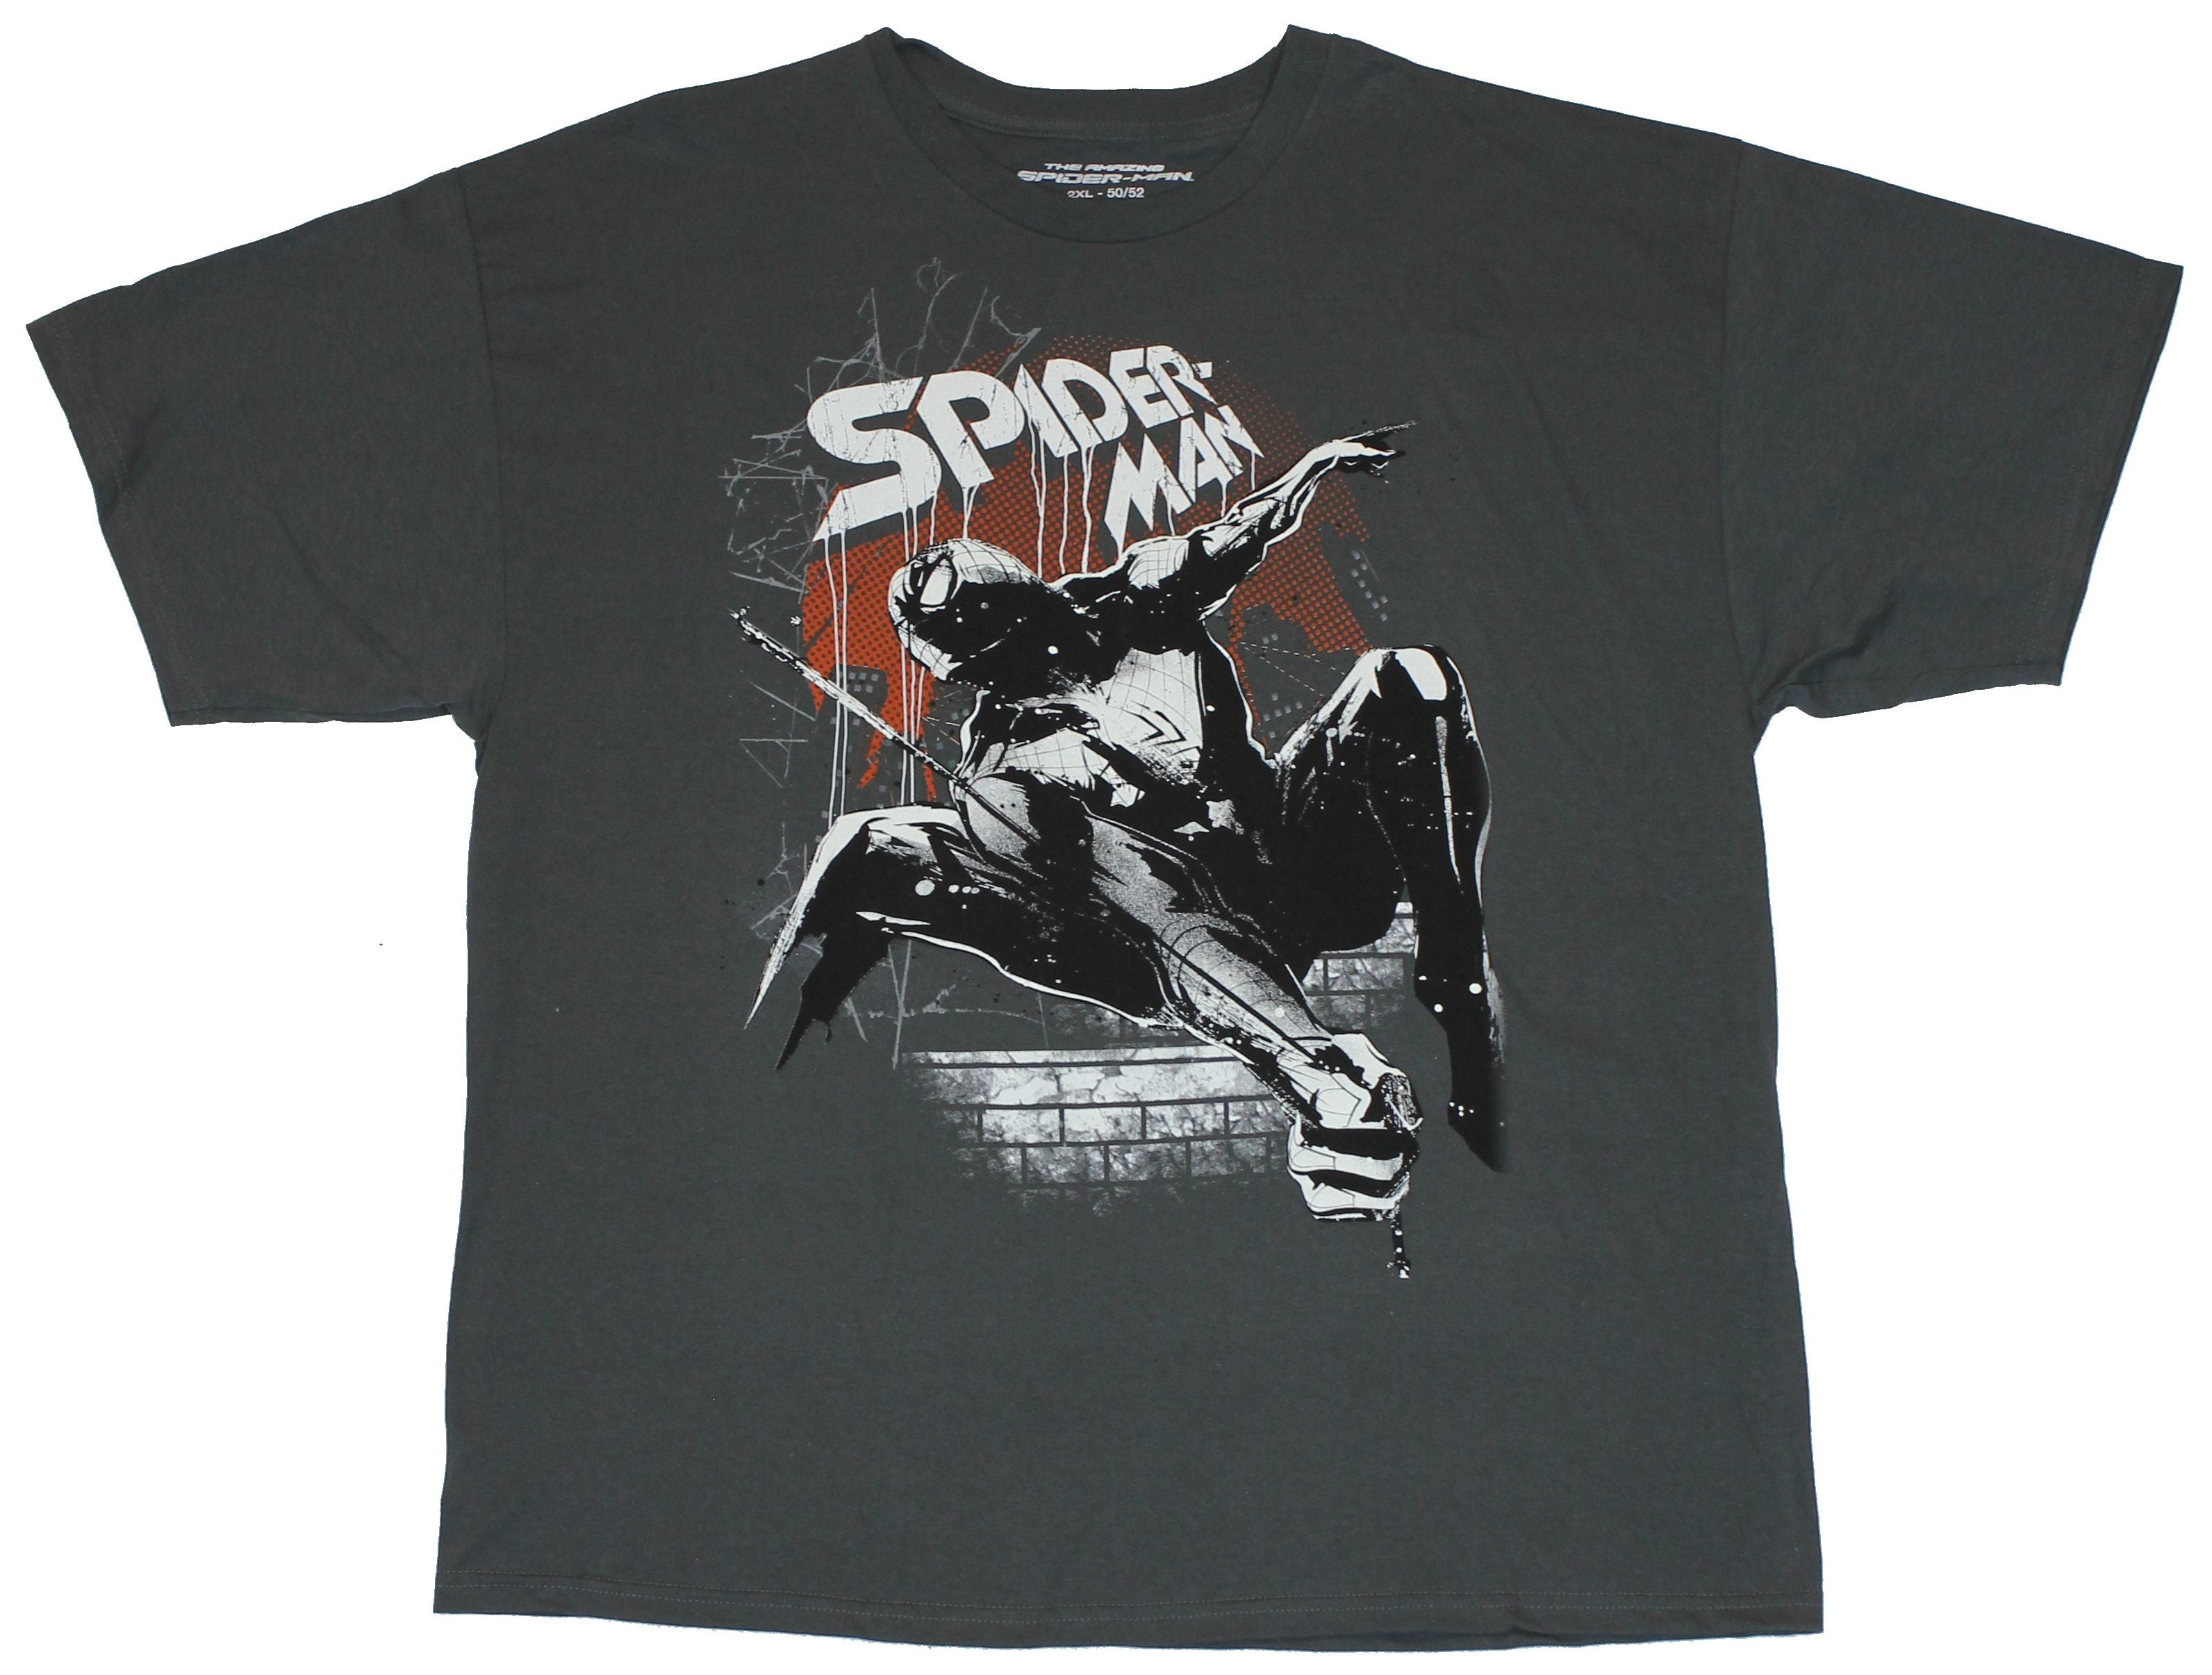 Spider-man Marvel Comics Mens T-Shirt - Amazing Swinging In Splatter Glowing Pic